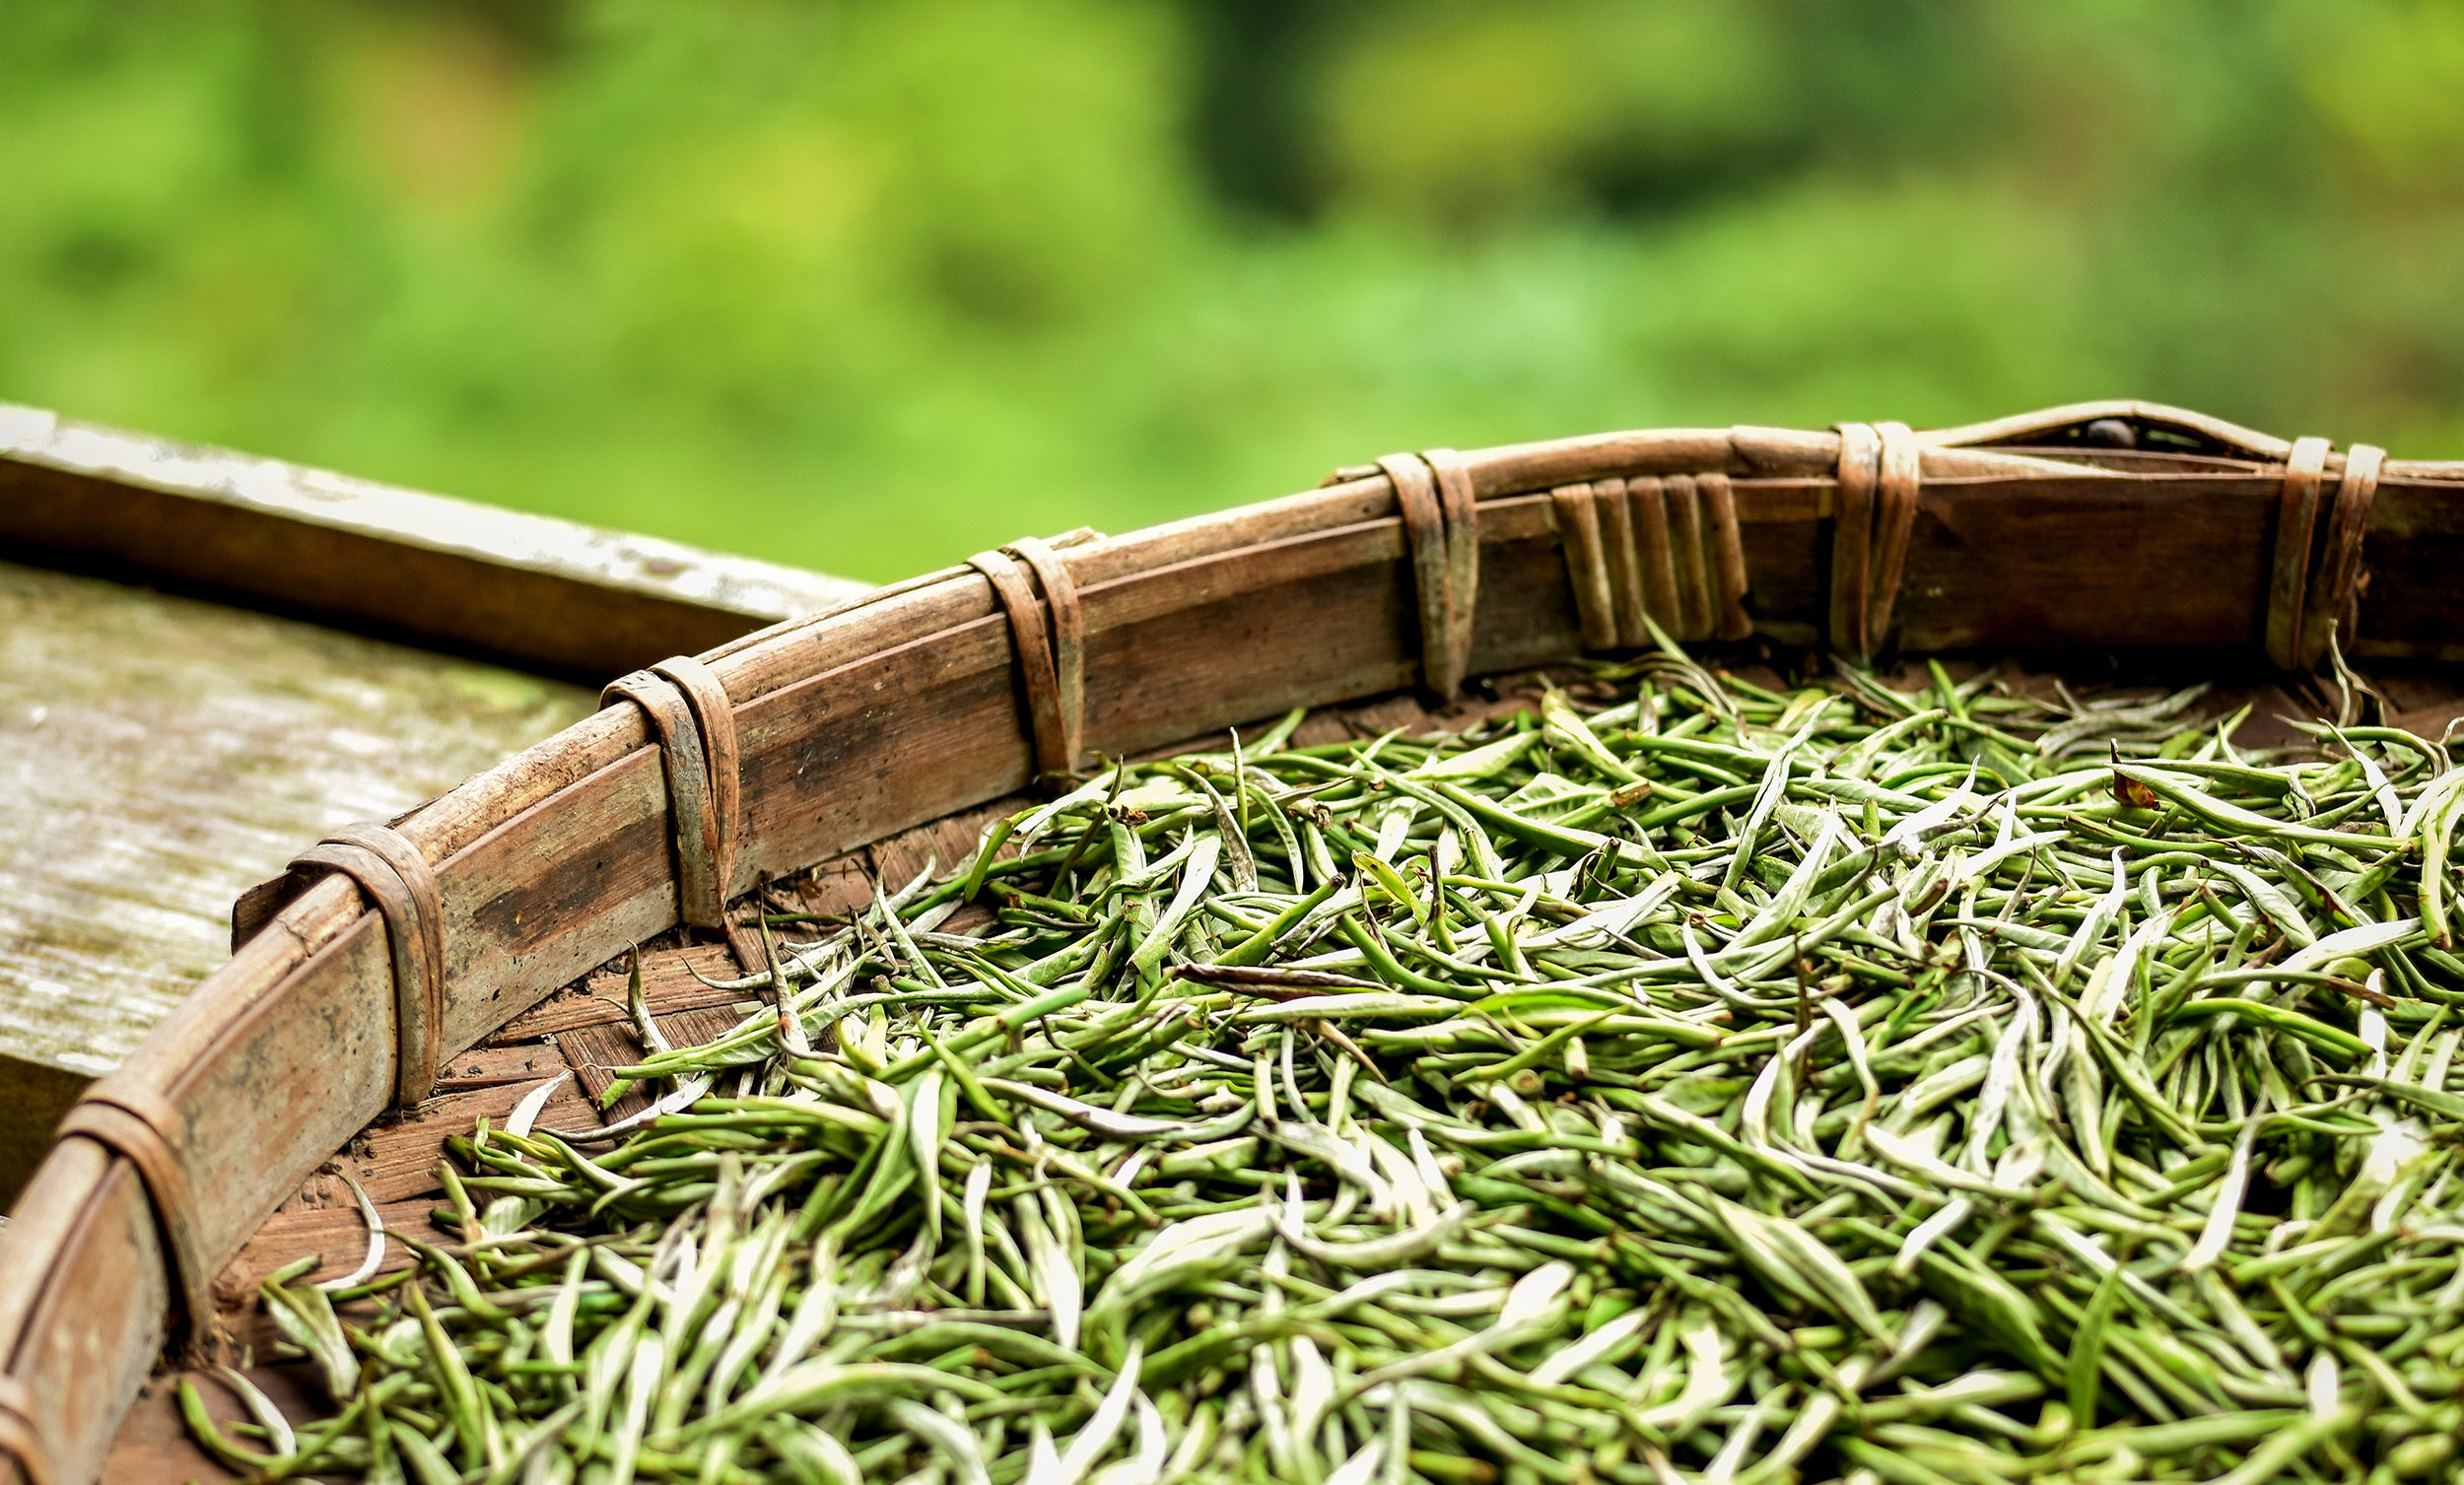 Uptown Tea Shop - Premium Loose Leaf Teas and Accessories: Air Drying of Silver Needle White Tea